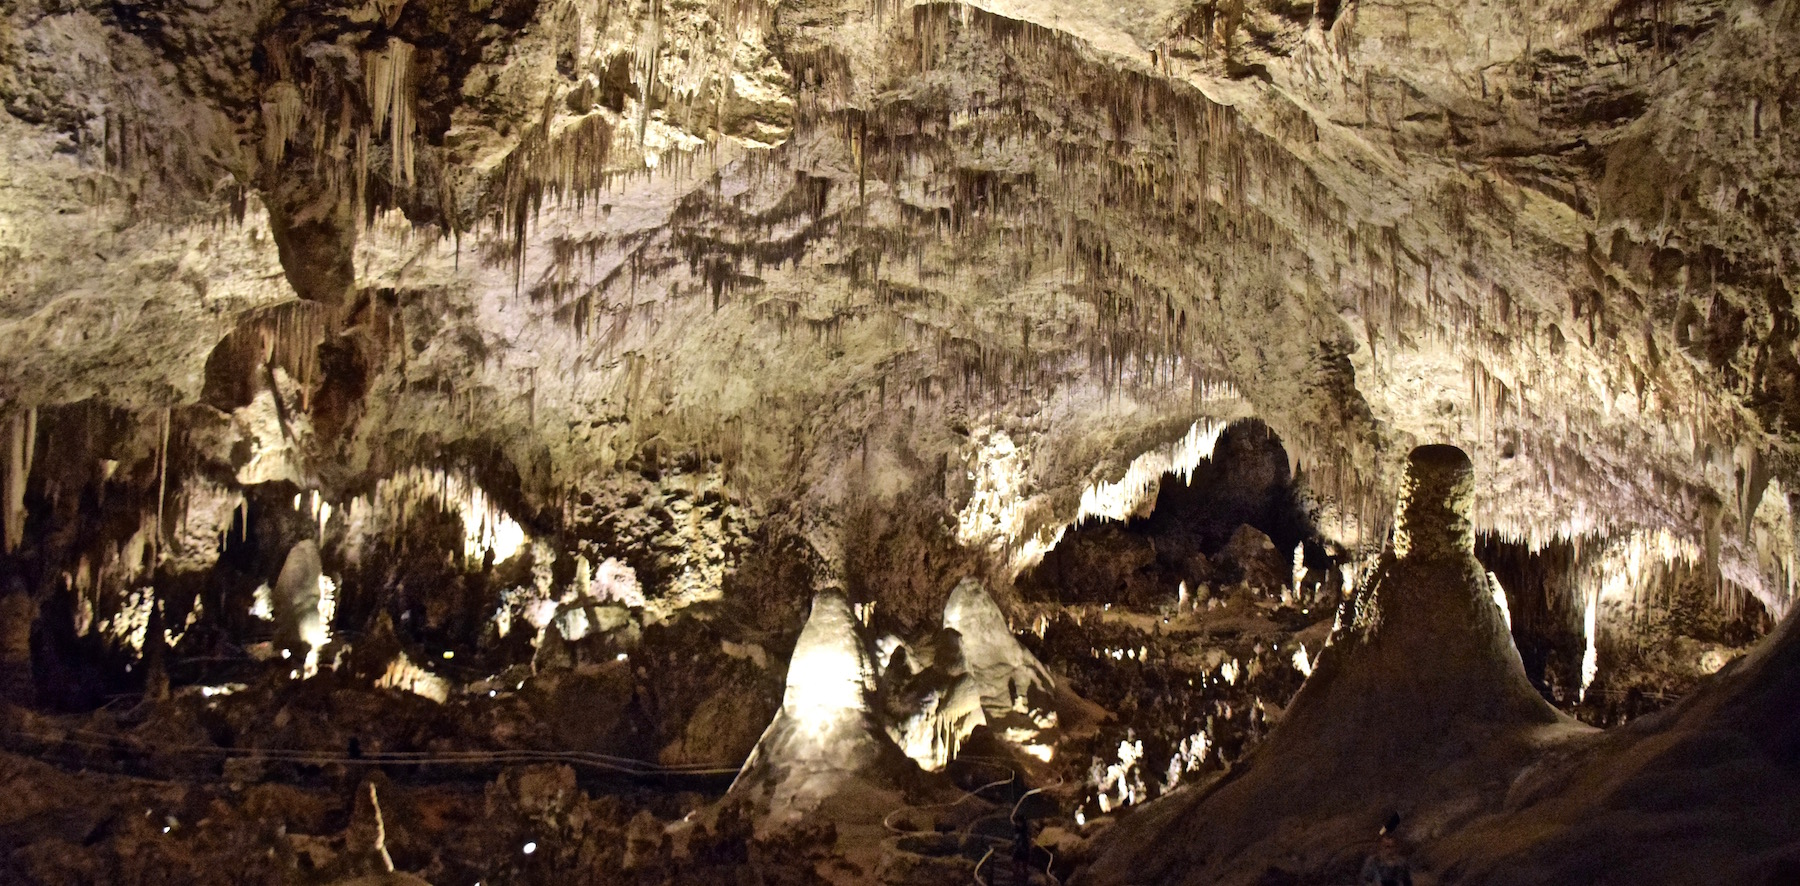 parc national de carlsbad caverns